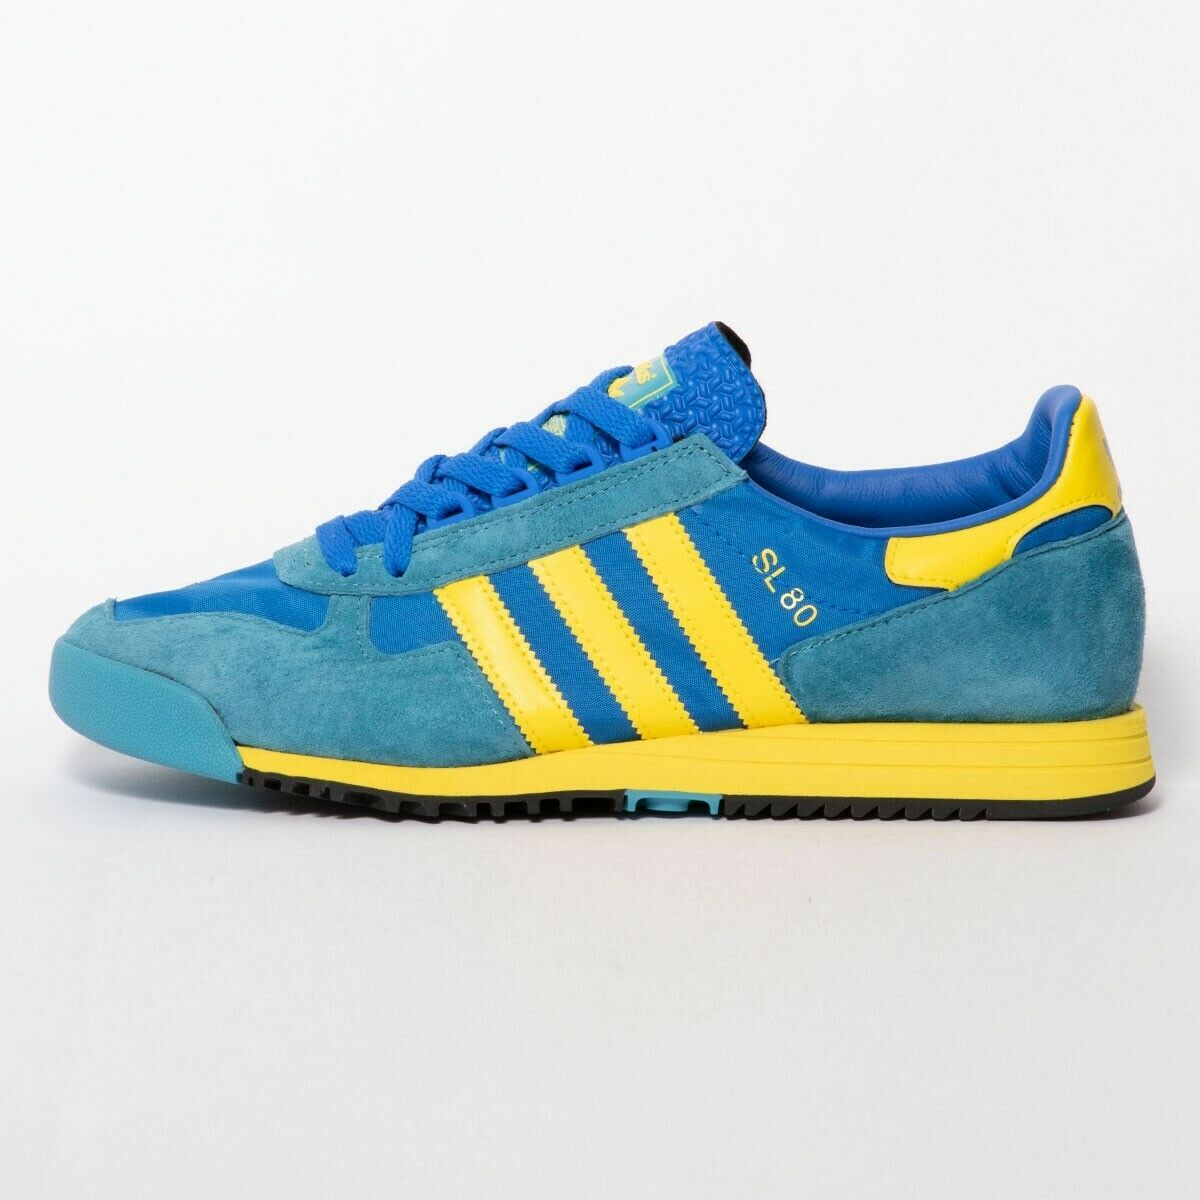 Adidas Originals Zx Flux Mens Running Trainers Sneakers S82748